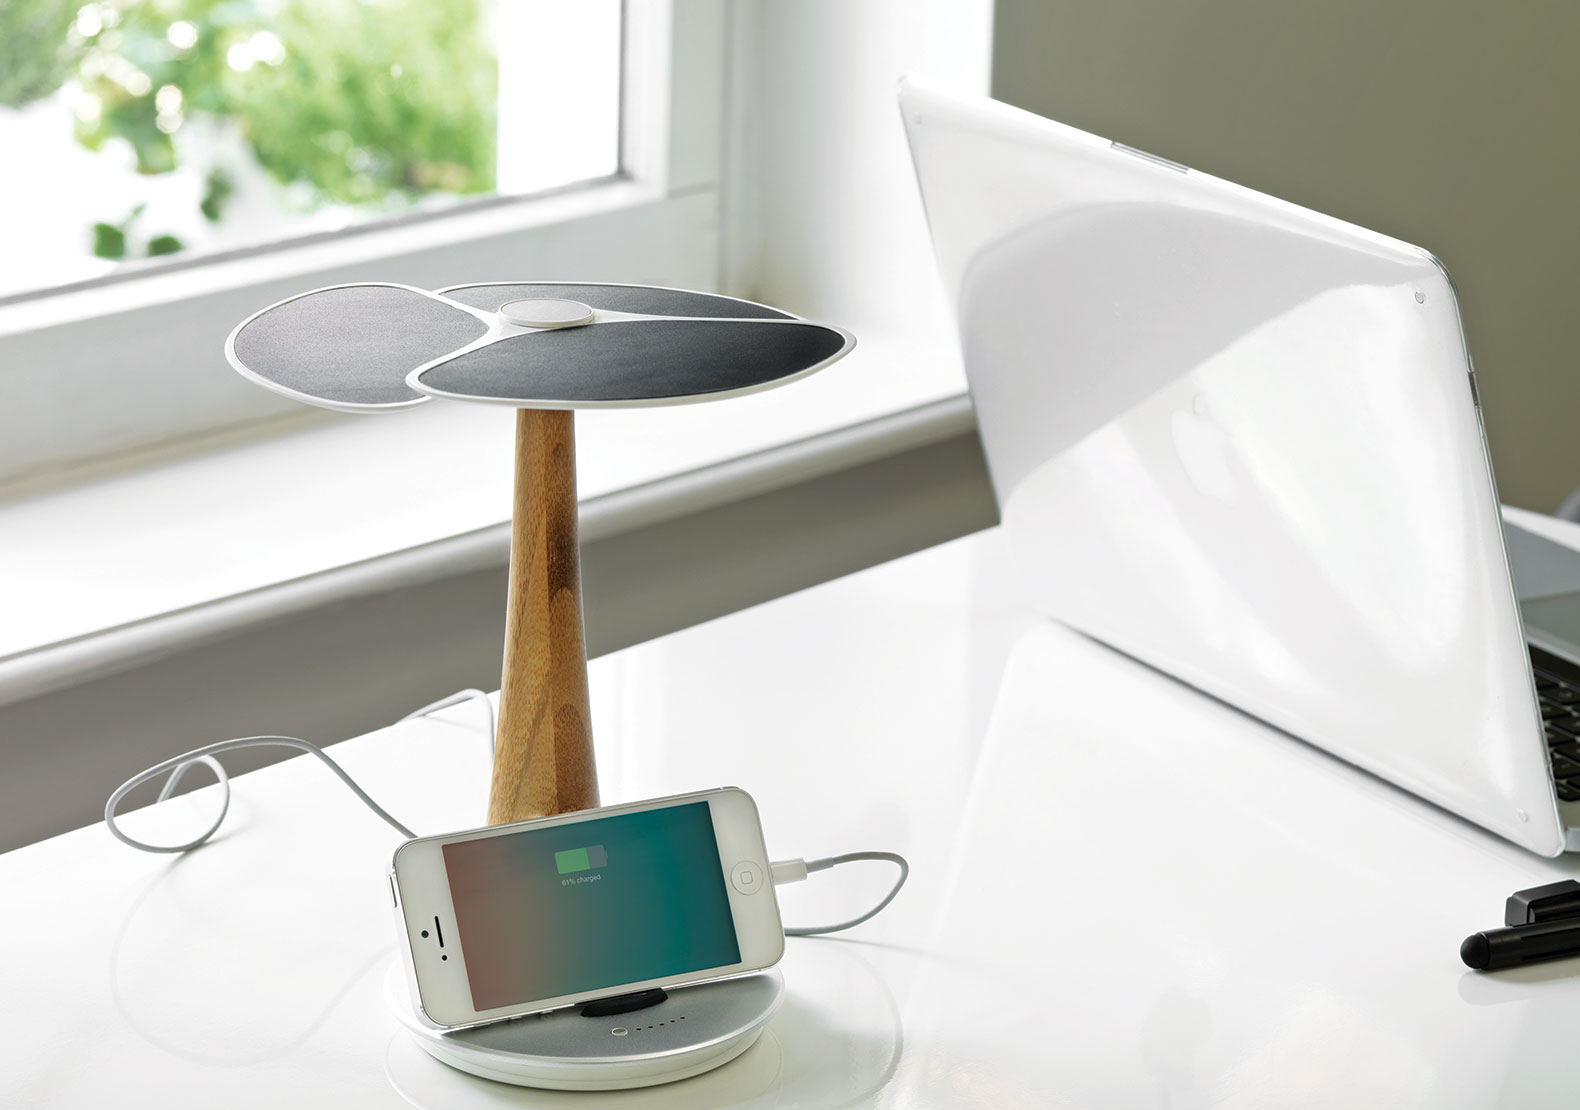 A desktop computer sitting on top of a table